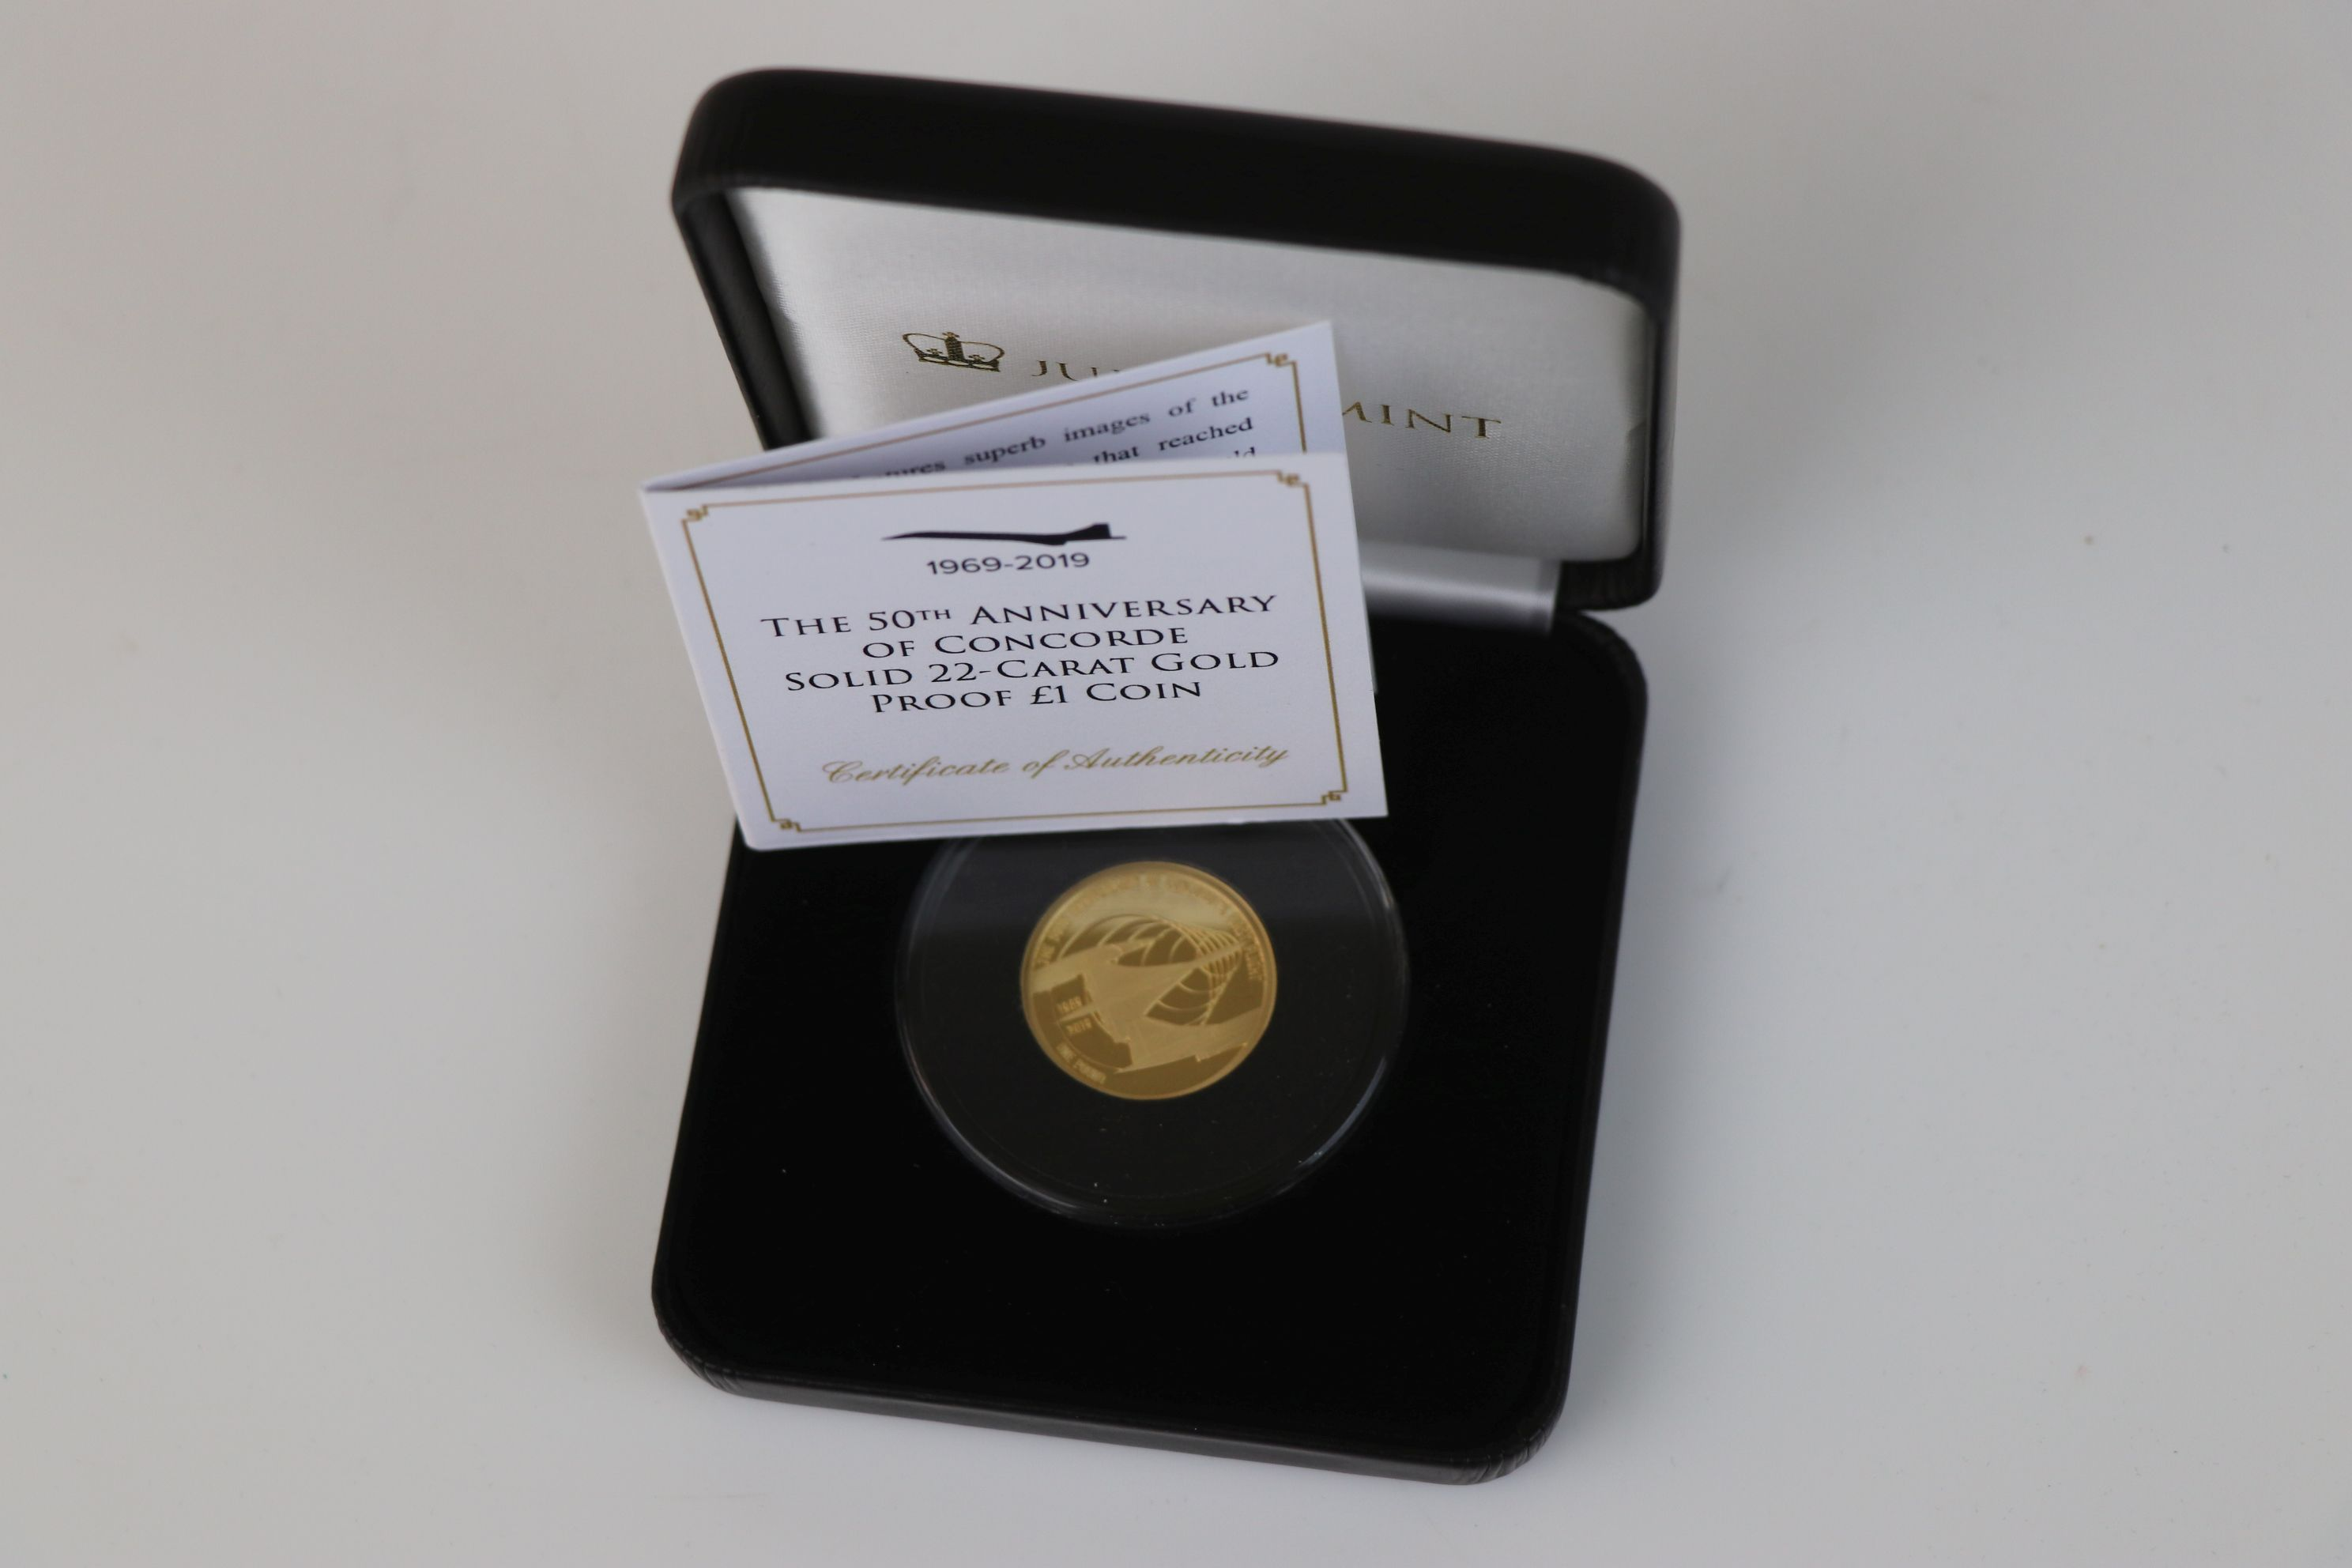 A cased Jubilee Mint The 50th Anniversary of Concorde 22ct gold proof £1 coin, complete with C.O.